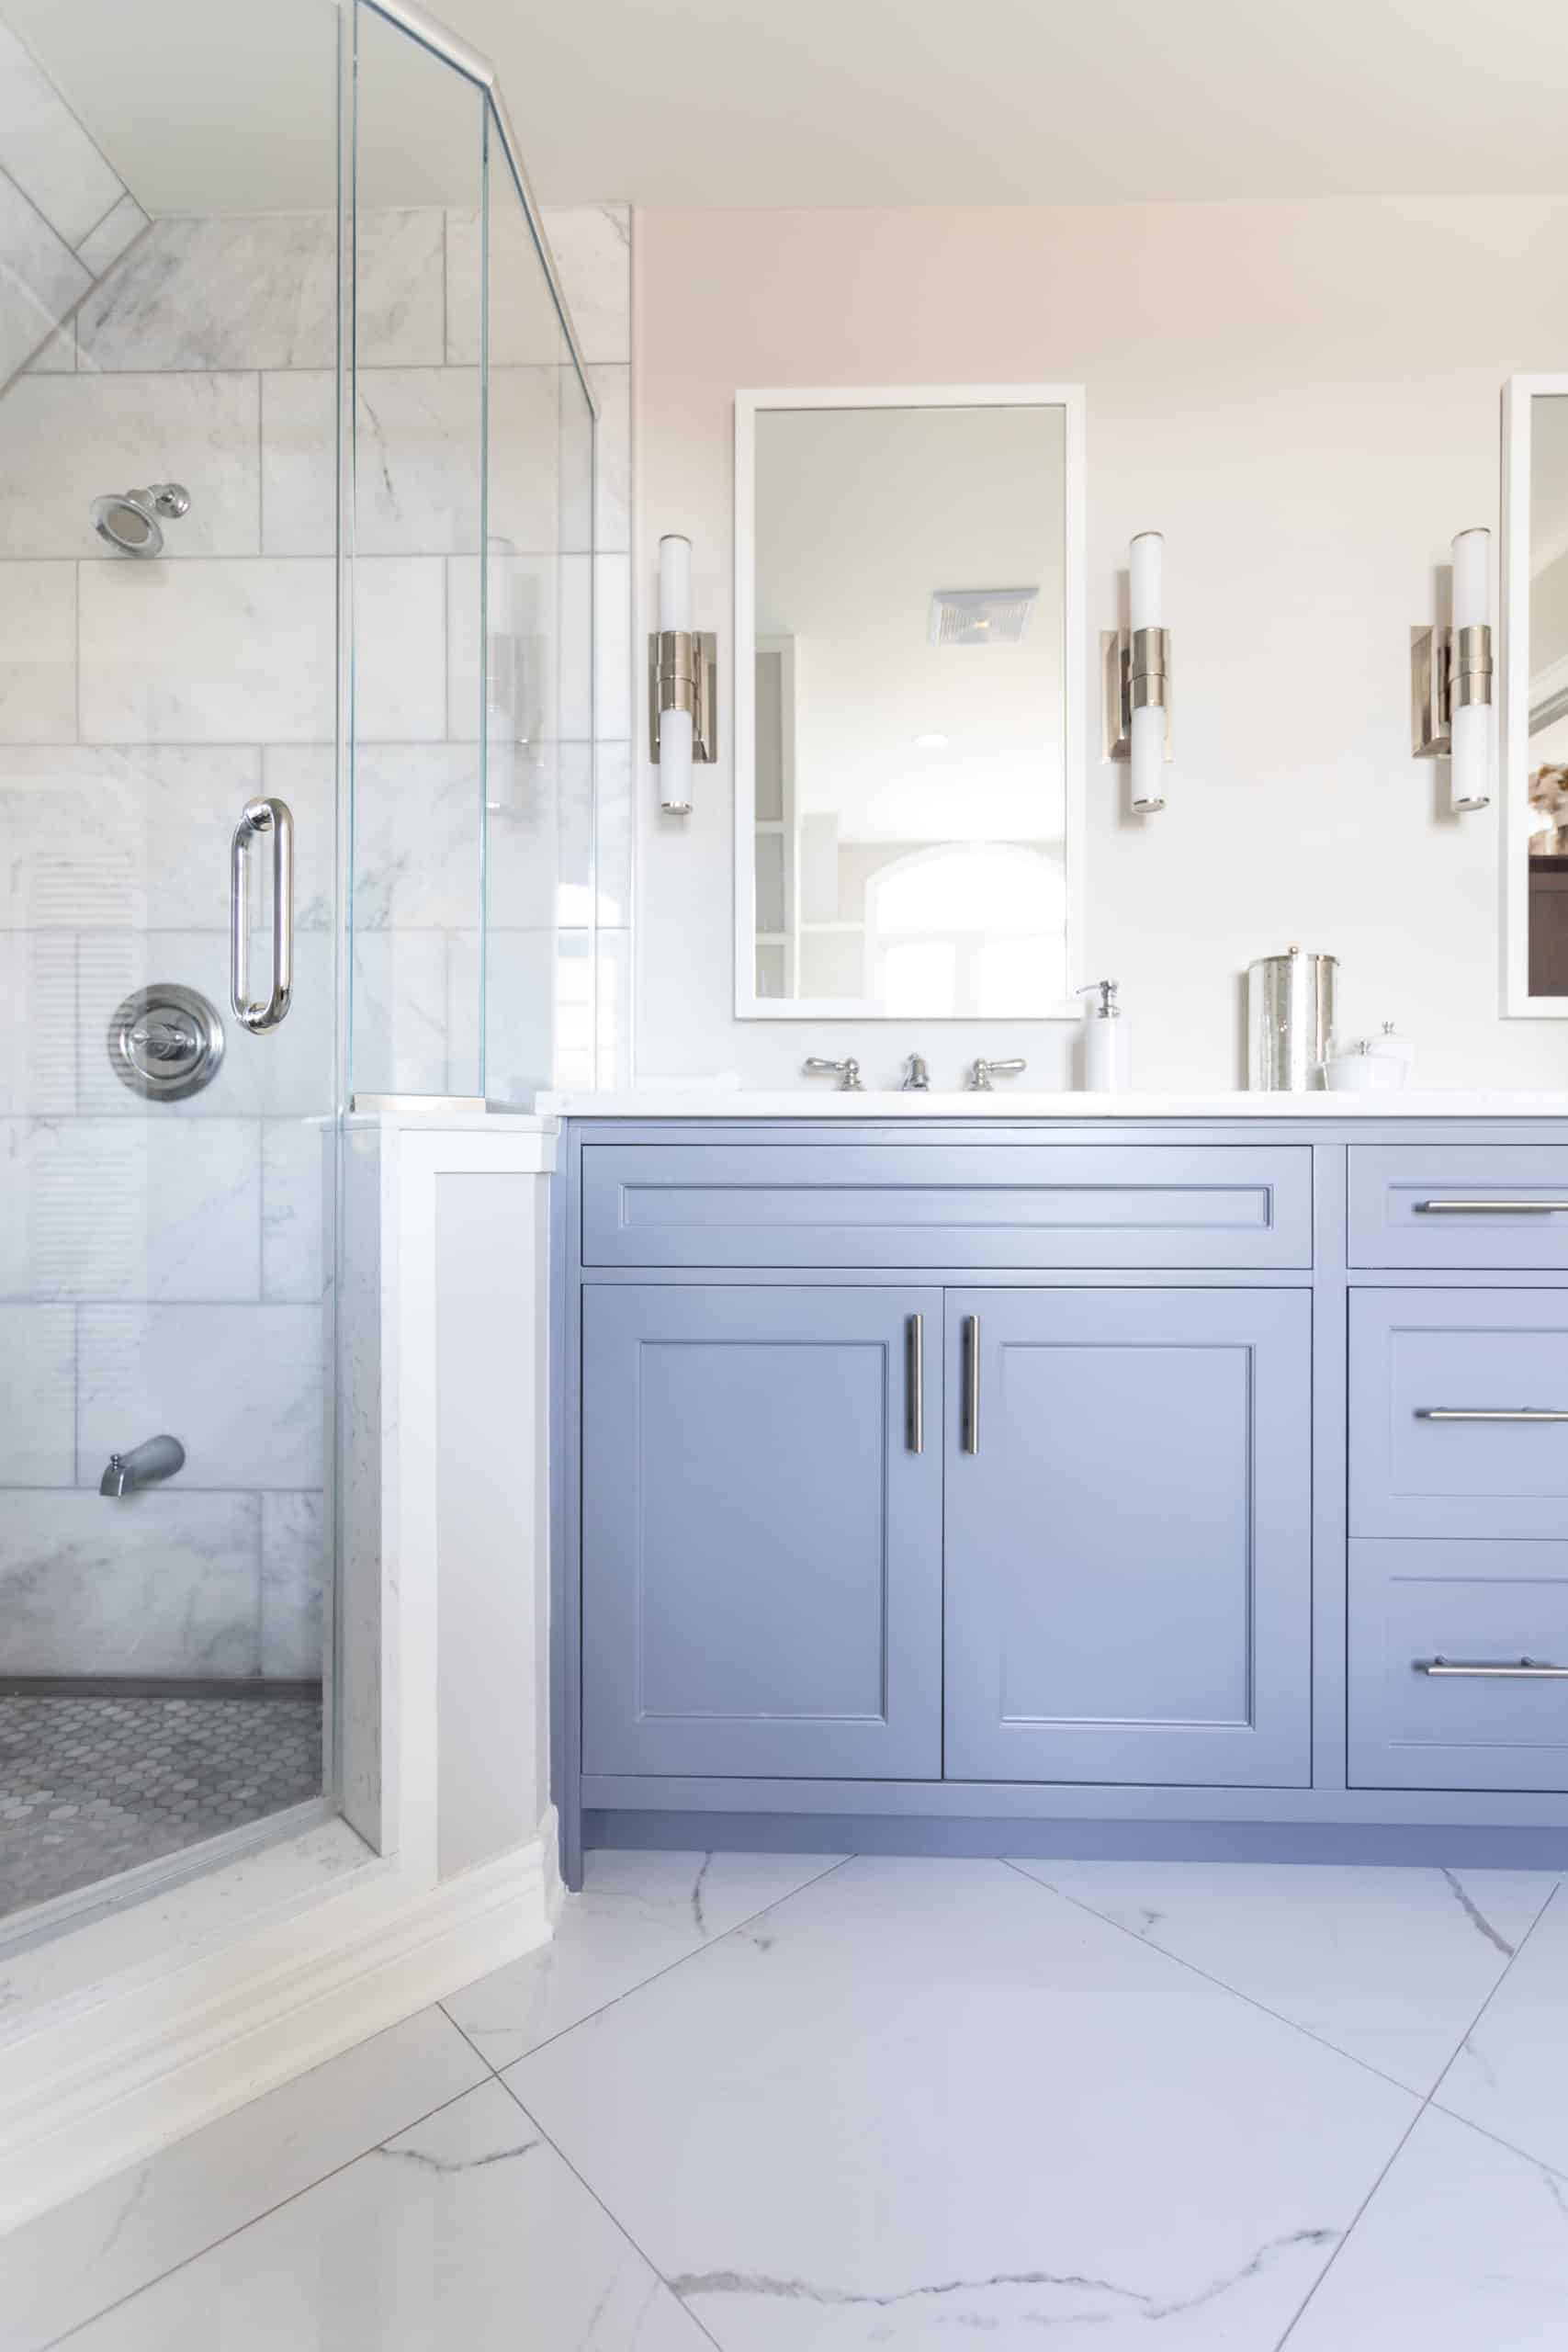 Blue double vanity next to a walk-in shower